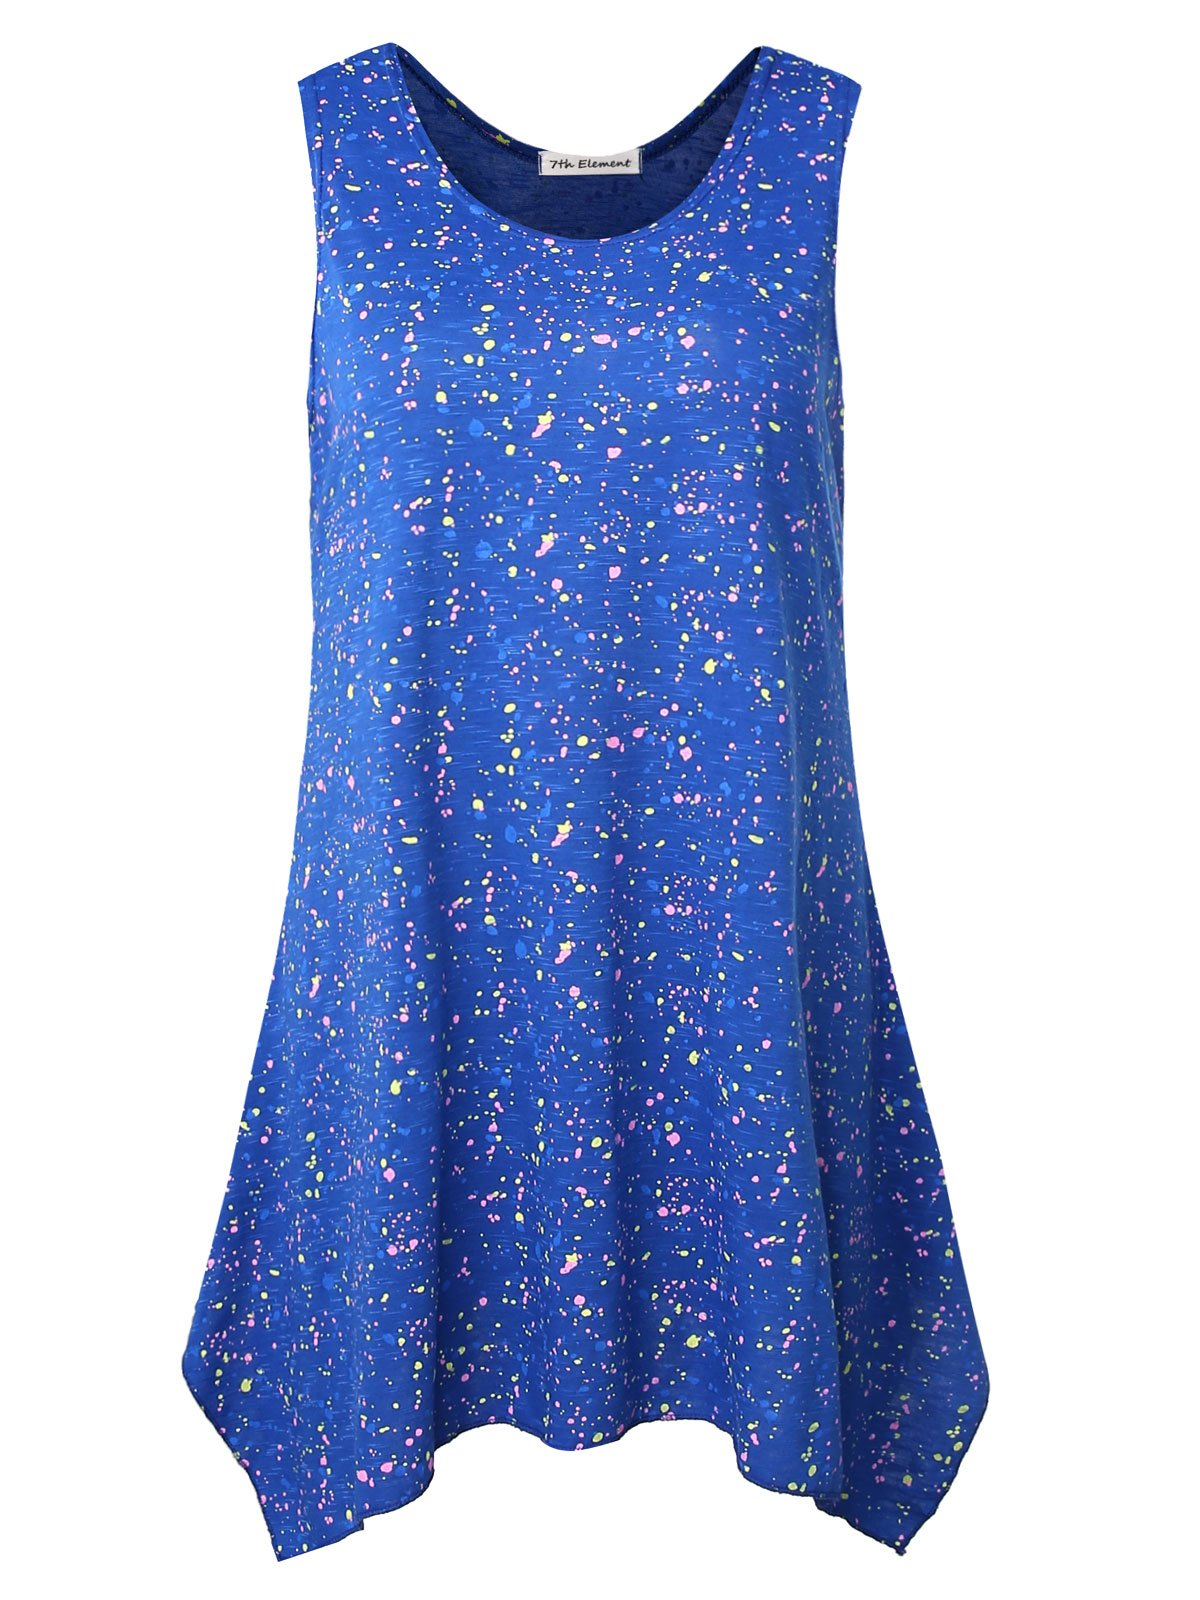 7th Element Plus Size Sleeveless Tunic Flare Flowy Tank Top for Women (Royal Blue,2XL)